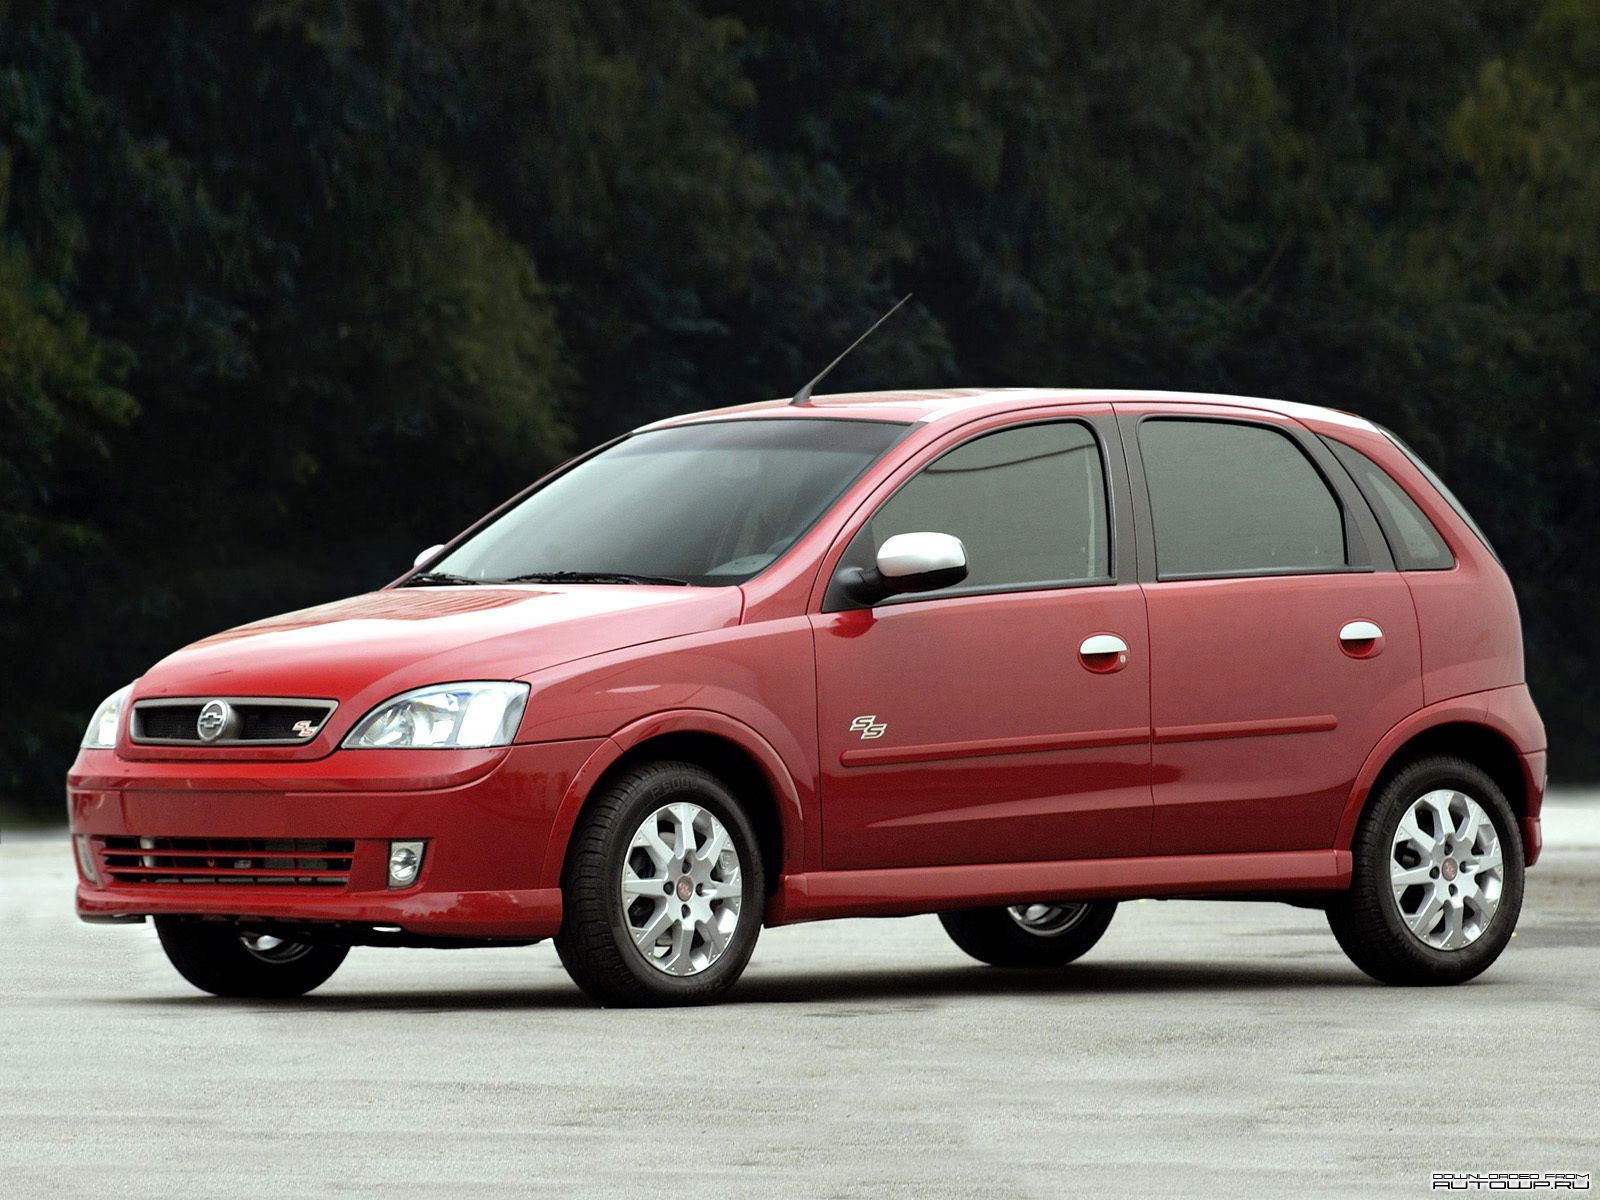 chevrolet corsa wagon (gm 4200) 1998 wallpaper